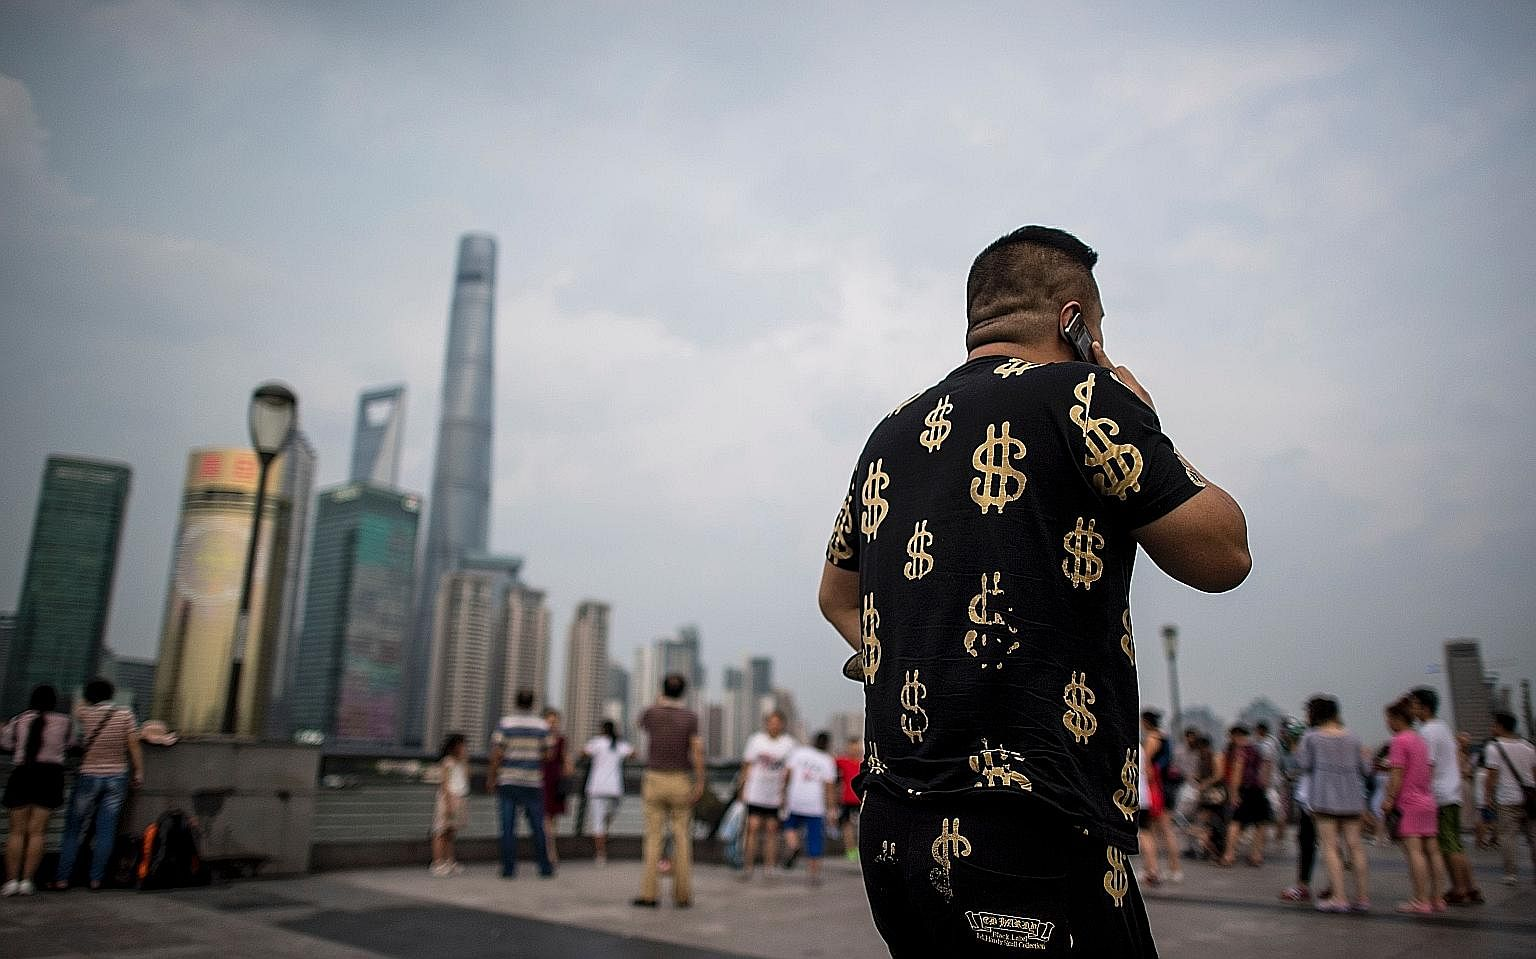 Dollars seem to be on this man's mind as he walks by Shanghai's financial district. As China's economy steadies and consumer spending increases, the prospects of many emerging markets are also improving.